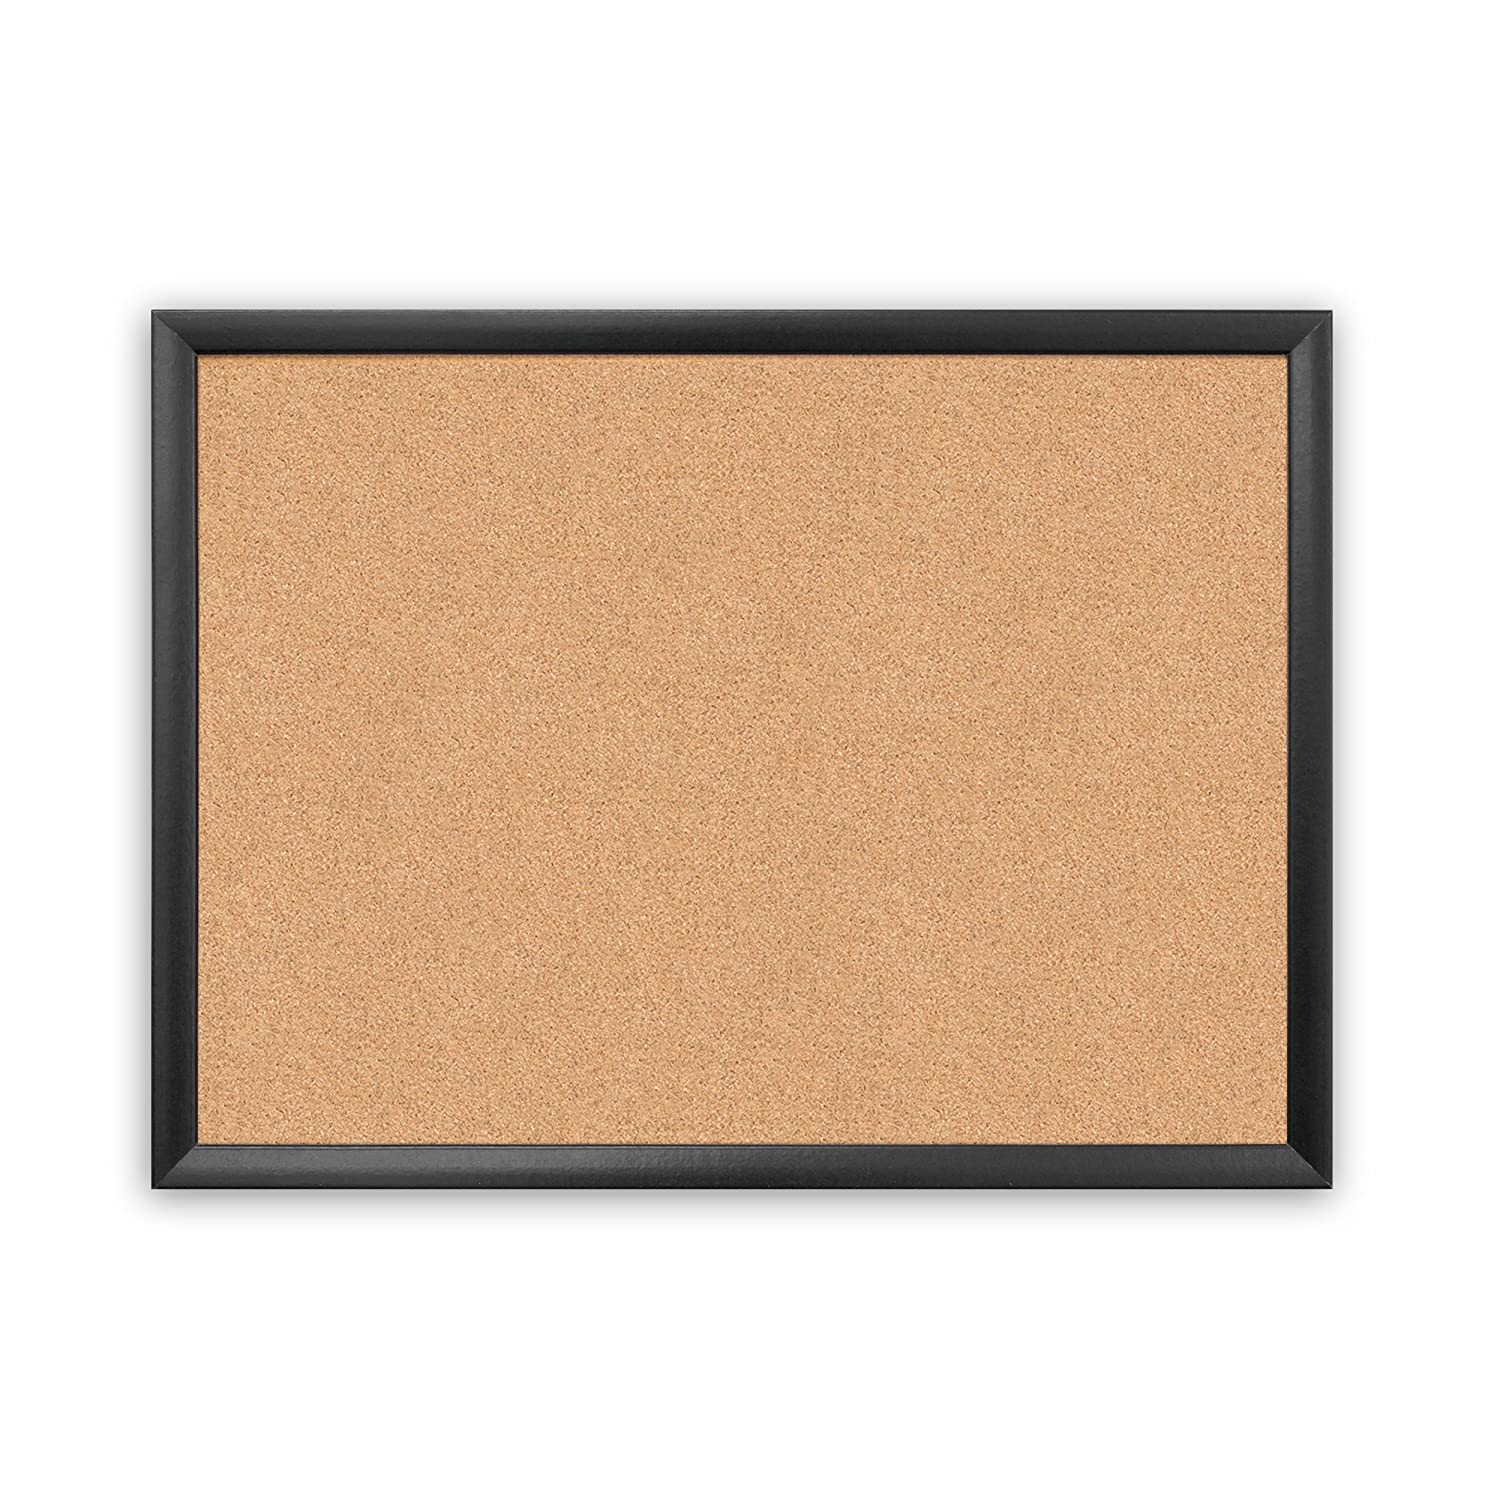 Cork Bulletin Board Amazoncom U Brands Cork Bulletin Board 35 X 23 Inches Black